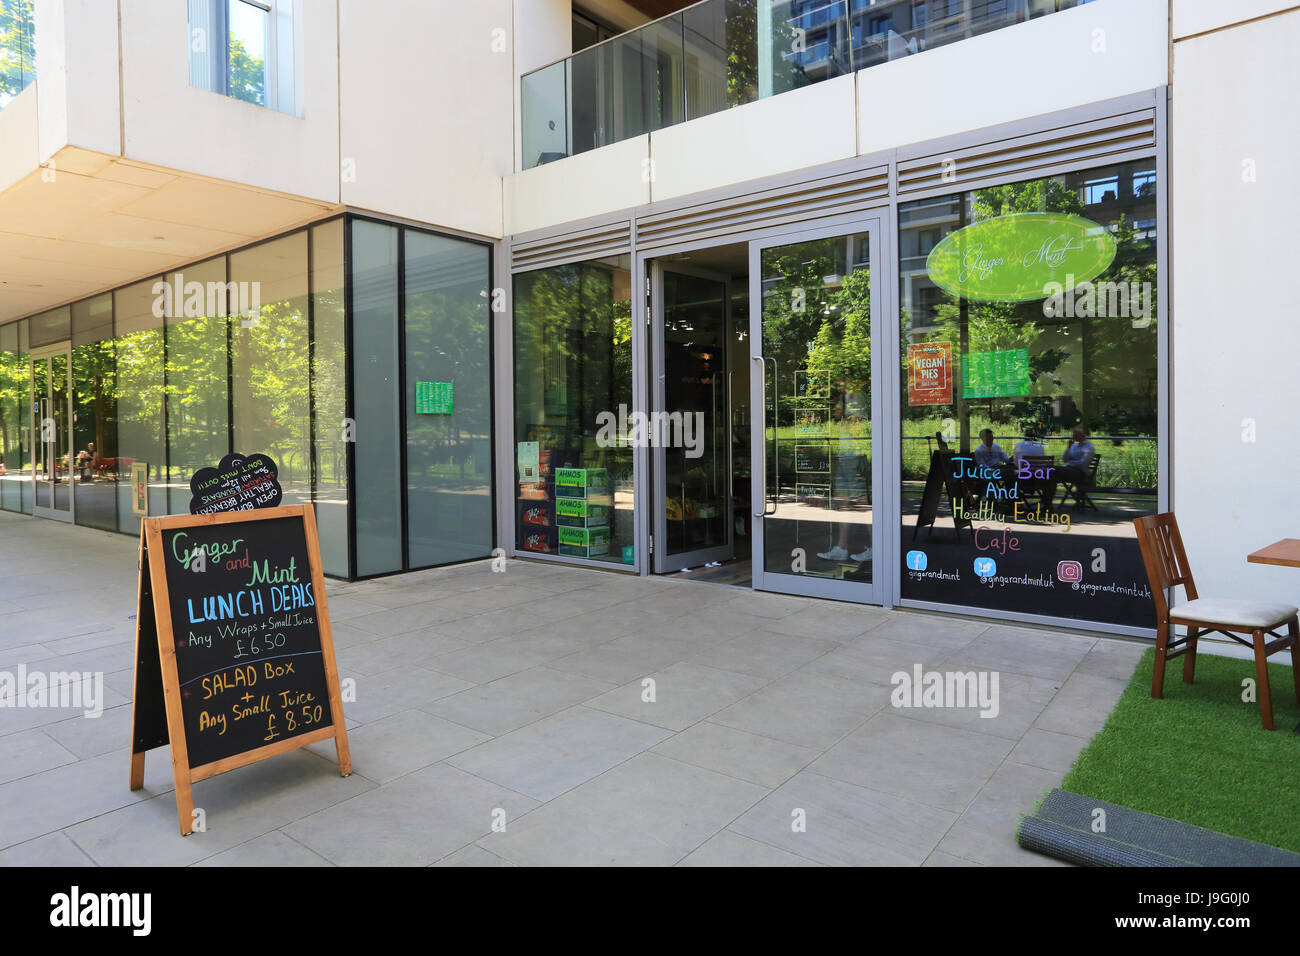 Ginger & Mint cafe/juice bar on Victory Parade, in trendy East Village, former home of the Olympic athletes, - Stock Image